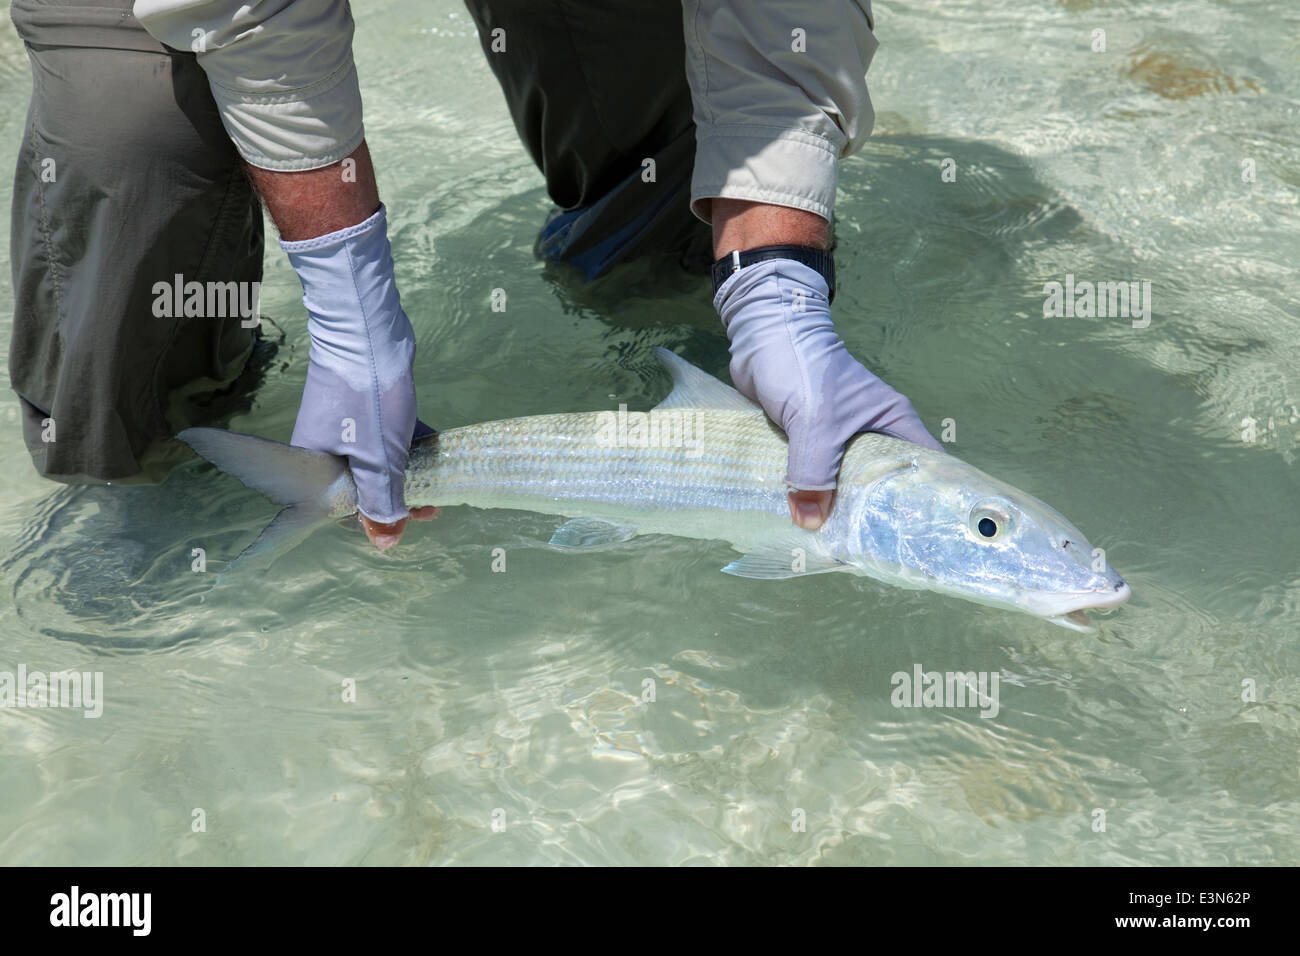 Saltwater fly fishing for bonefish in the islands of the Bahamas - Stock Image